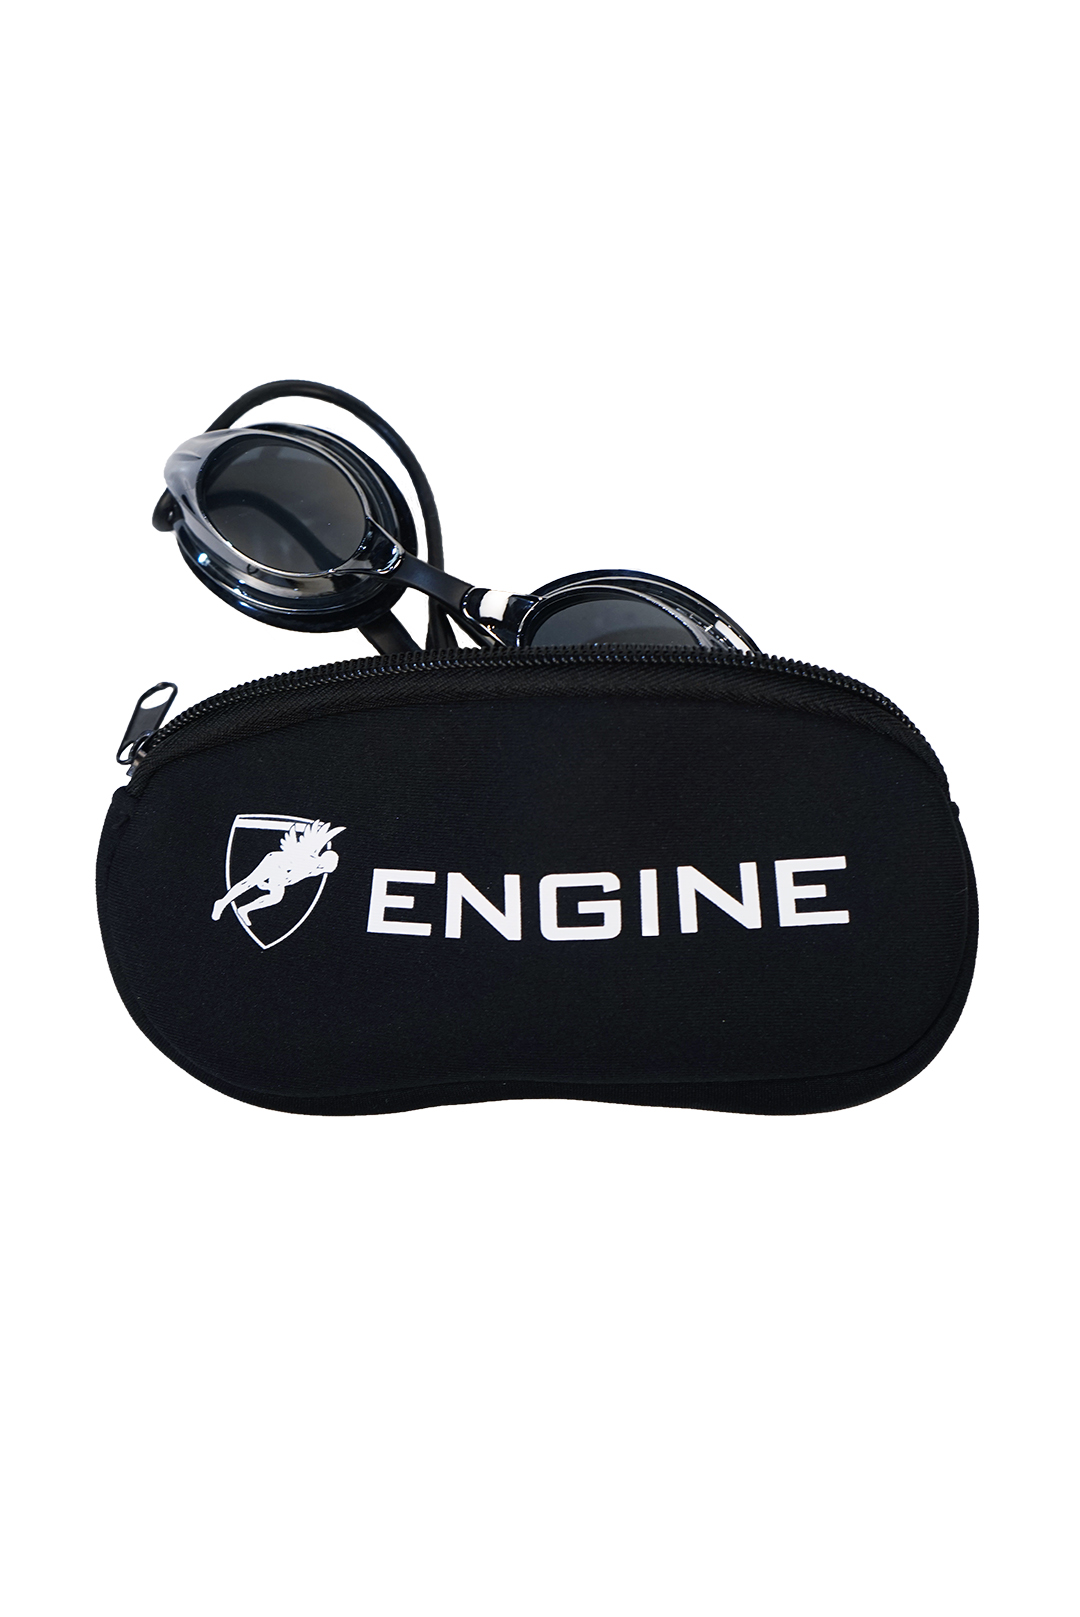 Goggles Case - Black